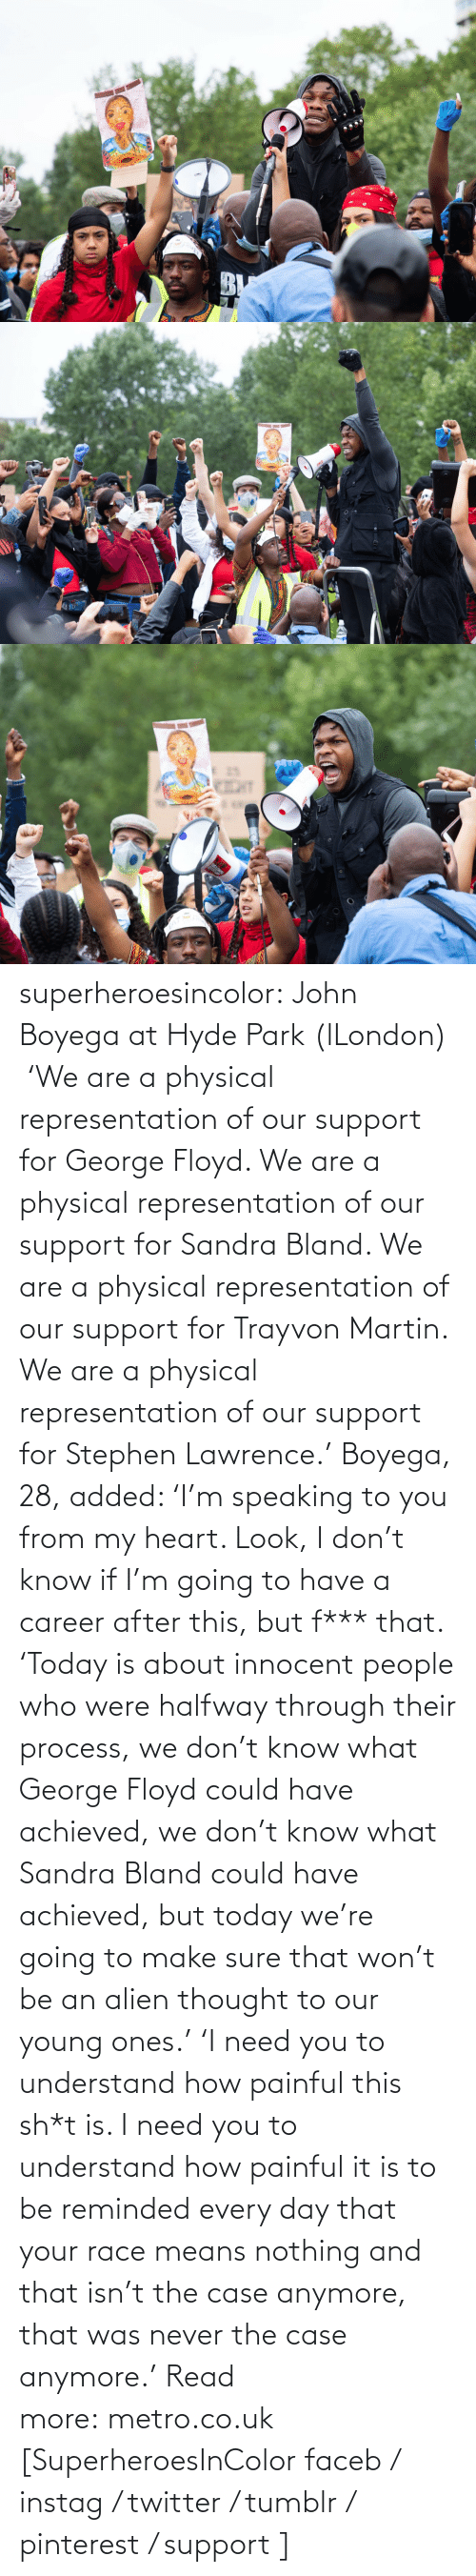 George: superheroesincolor:  John Boyega at Hyde Park (lLondon)     'We are a physical representation of our support for George Floyd. We are a physical representation of our support for Sandra Bland. We are a physical representation of our support for Trayvon Martin. We are a physical representation of our support for Stephen Lawrence.' Boyega, 28, added: 'I'm speaking to you from my heart. Look, I don't know if I'm going to have a career after this, but f*** that. 'Today is about innocent people who were halfway through their process, we don't know what George Floyd could have achieved, we don't know what Sandra Bland could have achieved, but today we're going to make sure that won't be an alien thought to our young ones.' 'I need you to understand how painful this sh*t is. I need you to understand how painful it is to be reminded every day that your race means nothing and that isn't the case anymore, that was never the case anymore.' Read more: metro.co.uk   [SuperheroesInColor faceb / instag / twitter / tumblr / pinterest / support ]